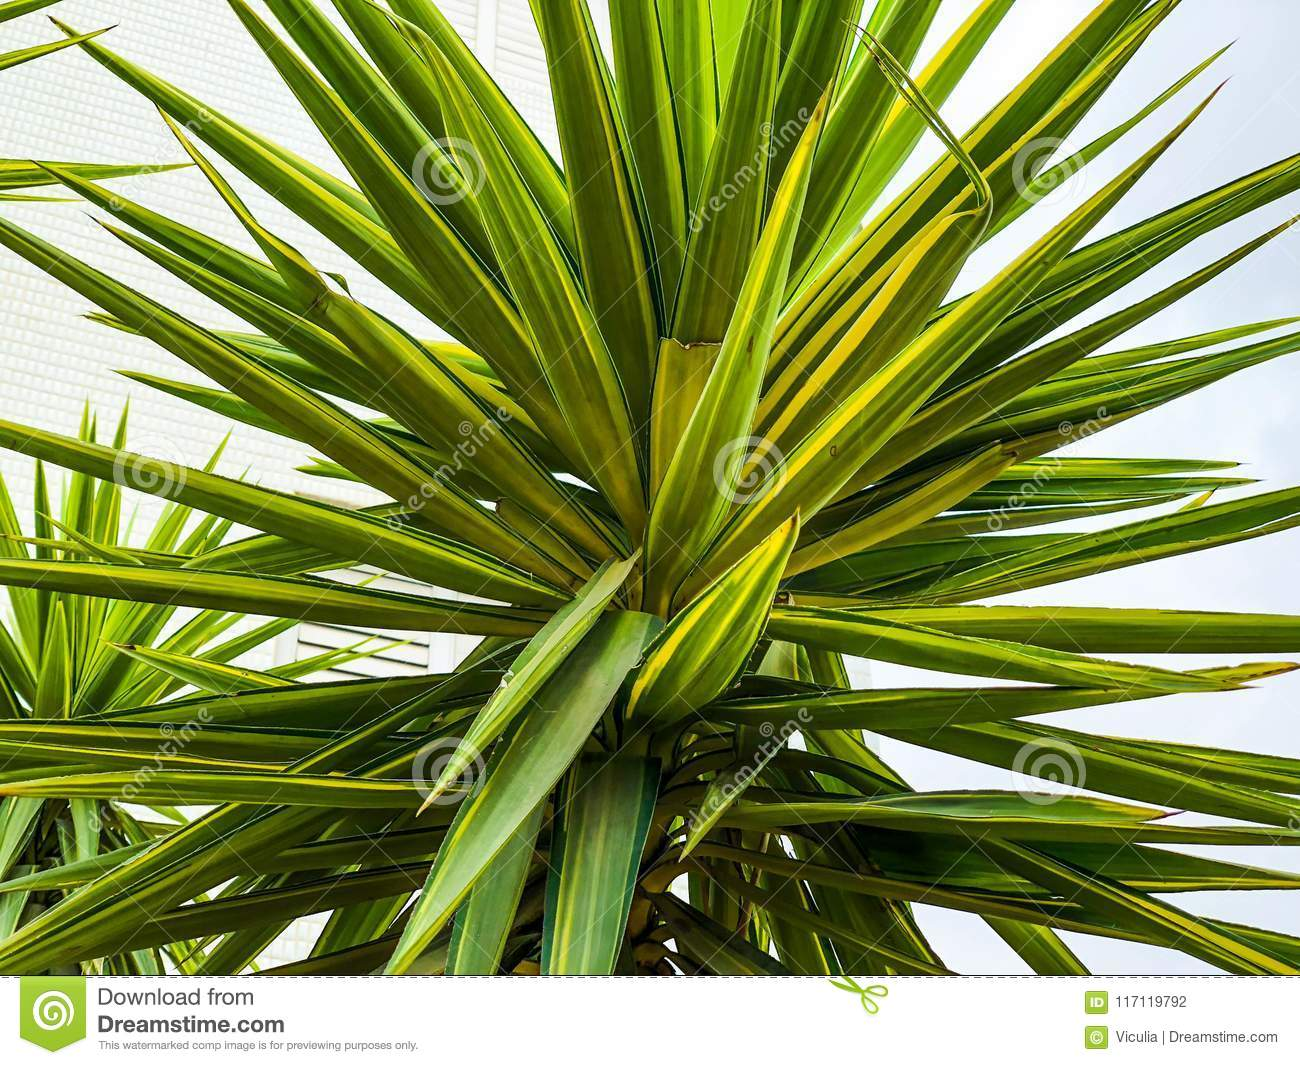 Tropical landscape with palm trees. Palm crowns with green leaves close-up